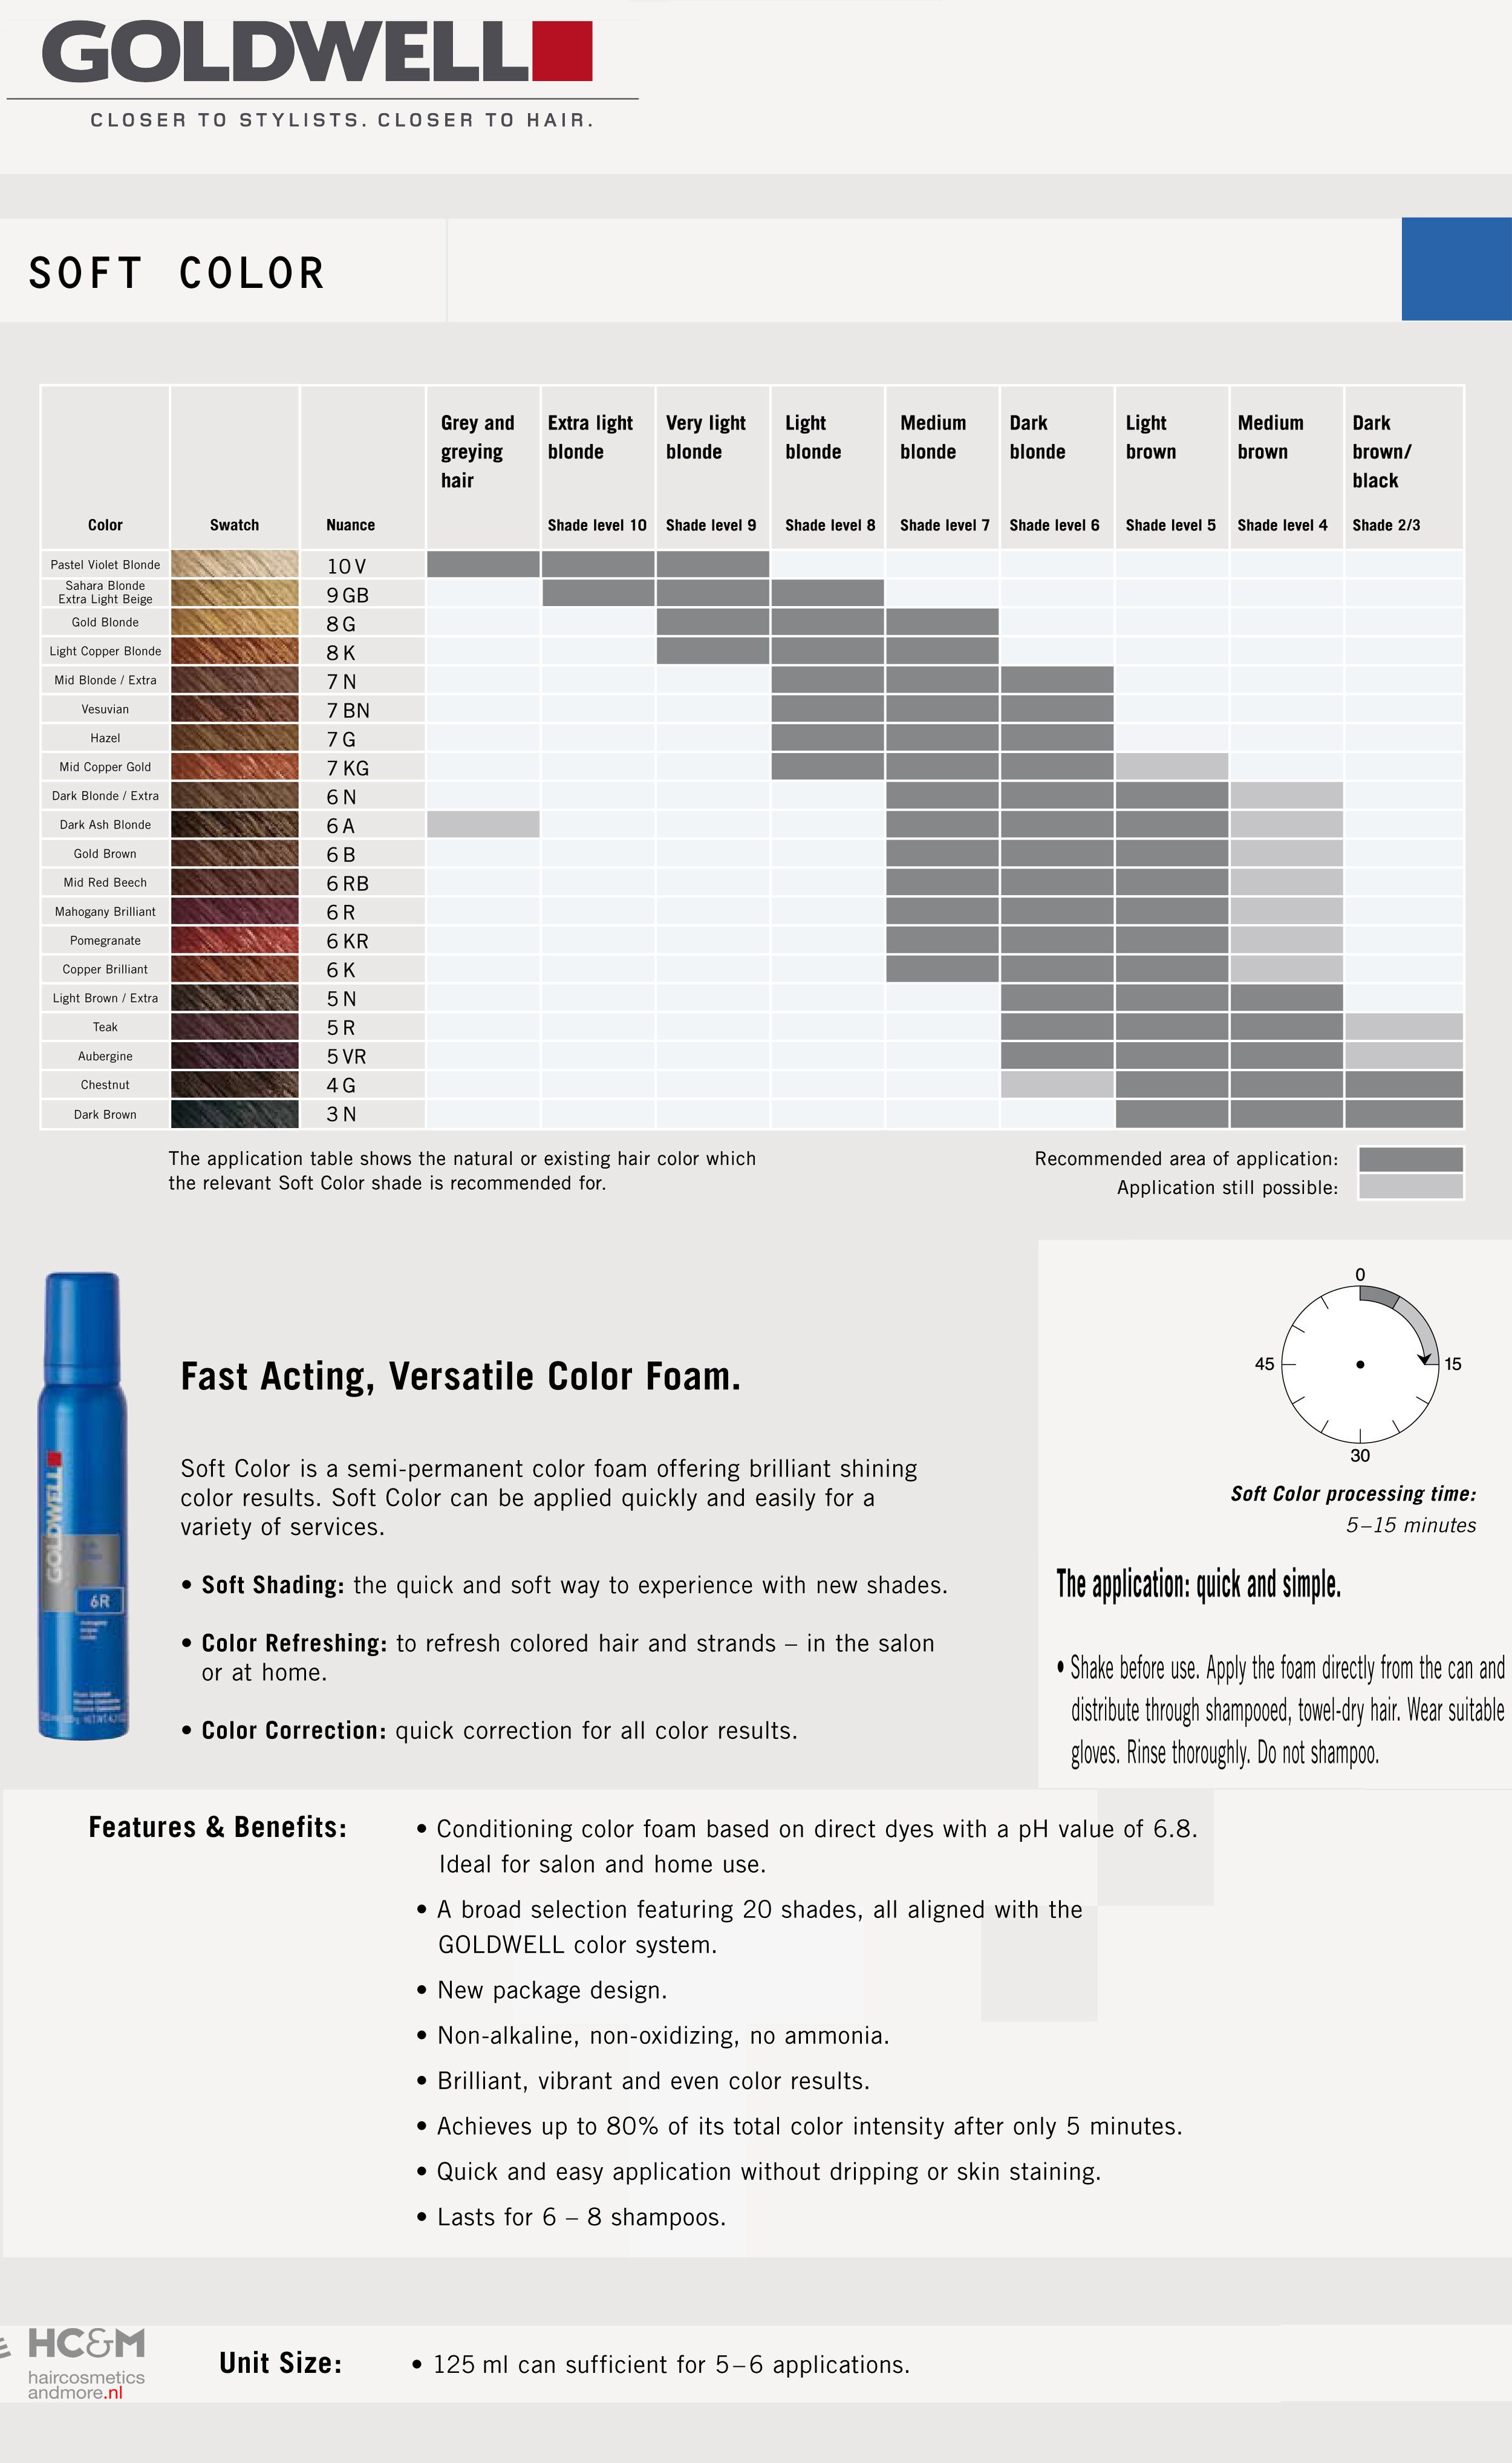 Goldwell Soft Color Shade Chart